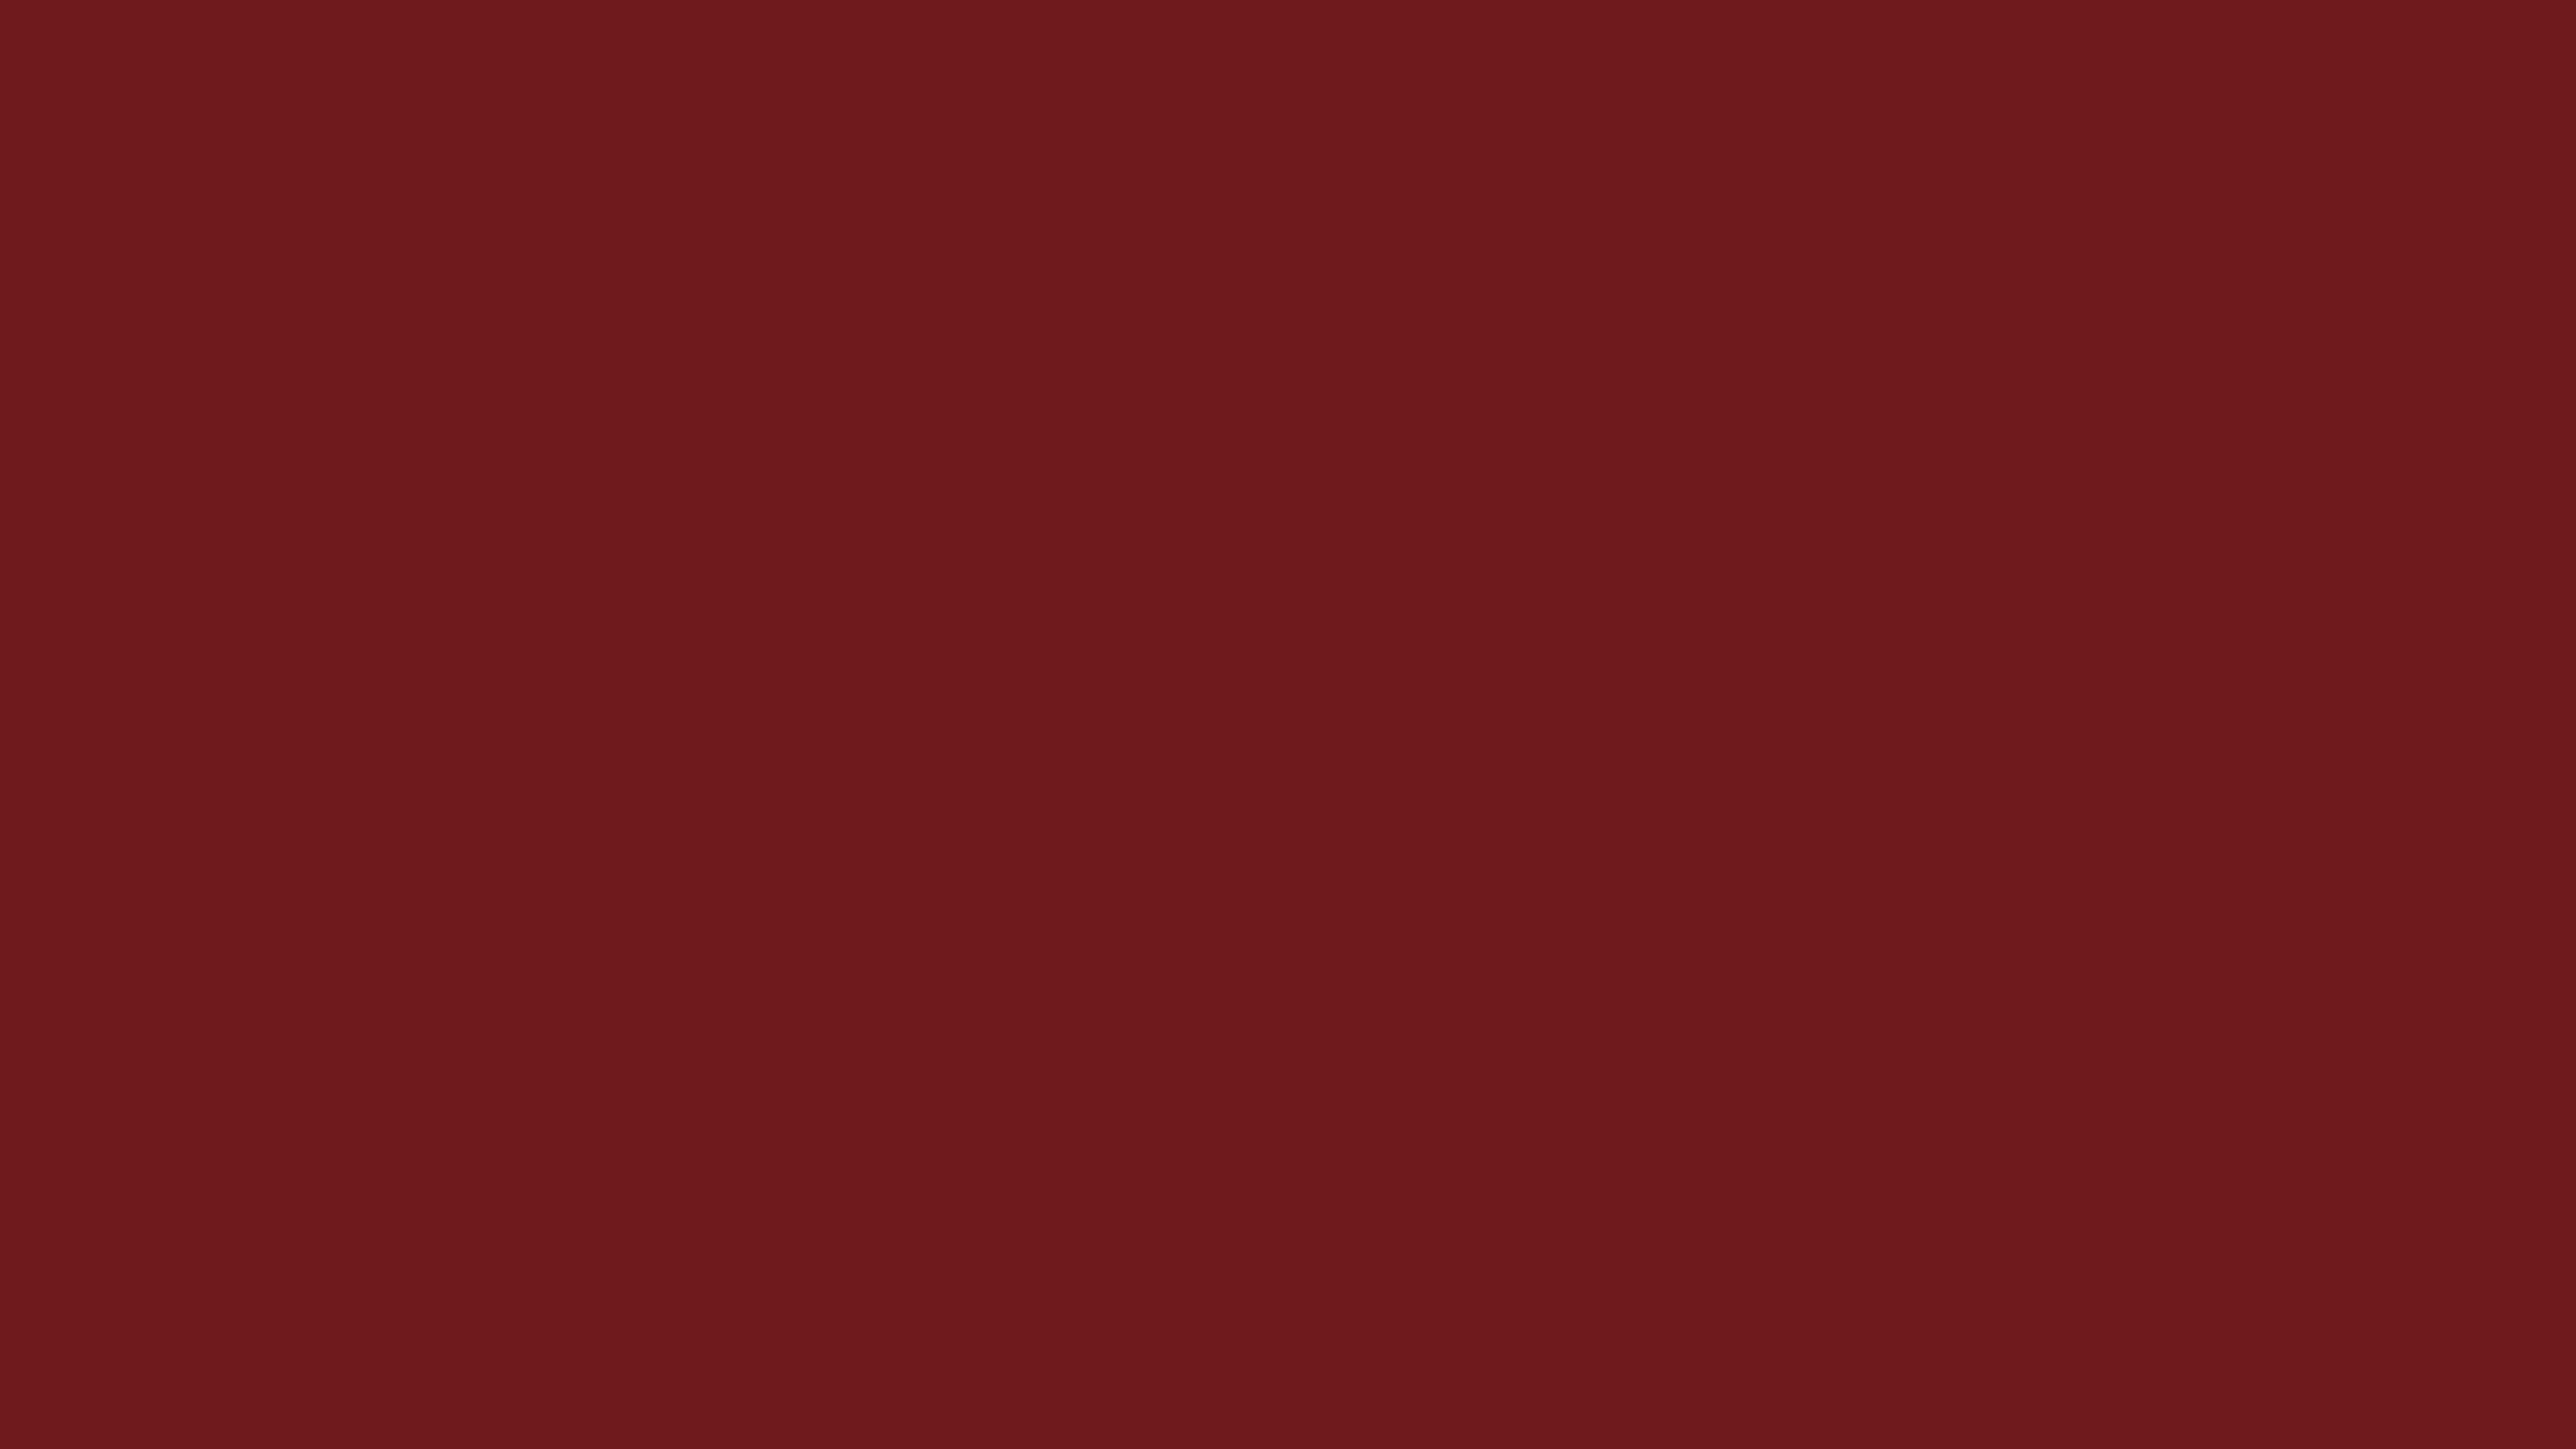 3840x2160 Persian Plum Solid Color Background